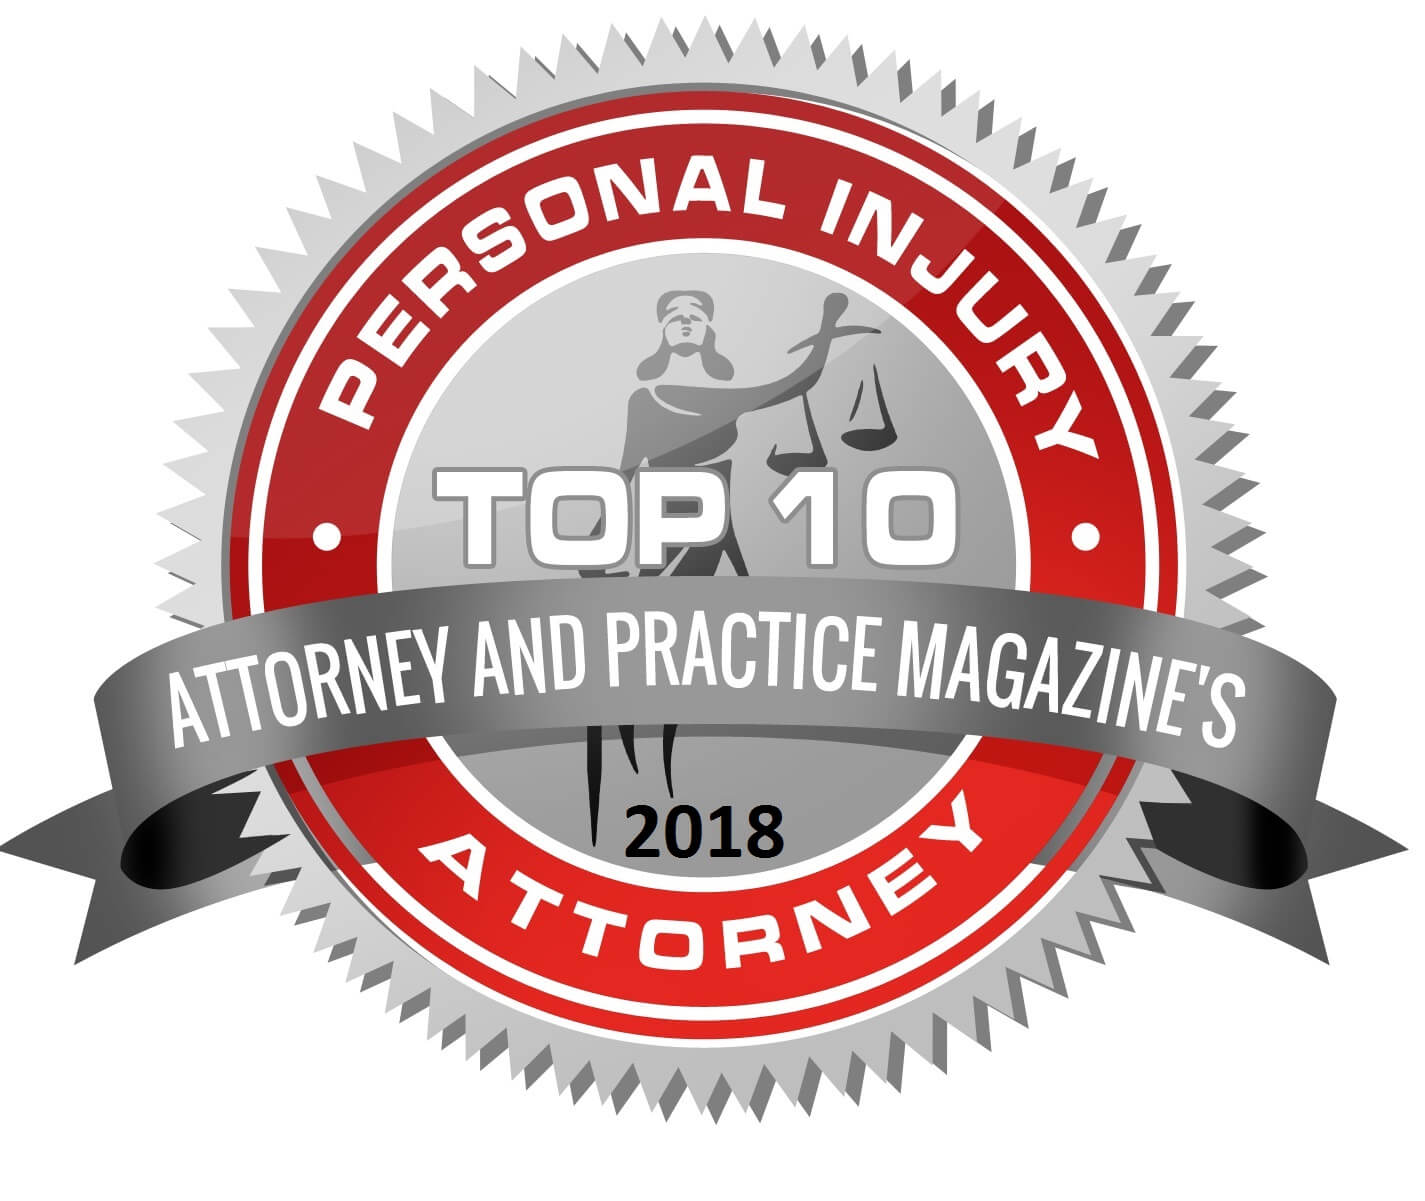 Marty Young Attorney and Practice Magazine Top 10